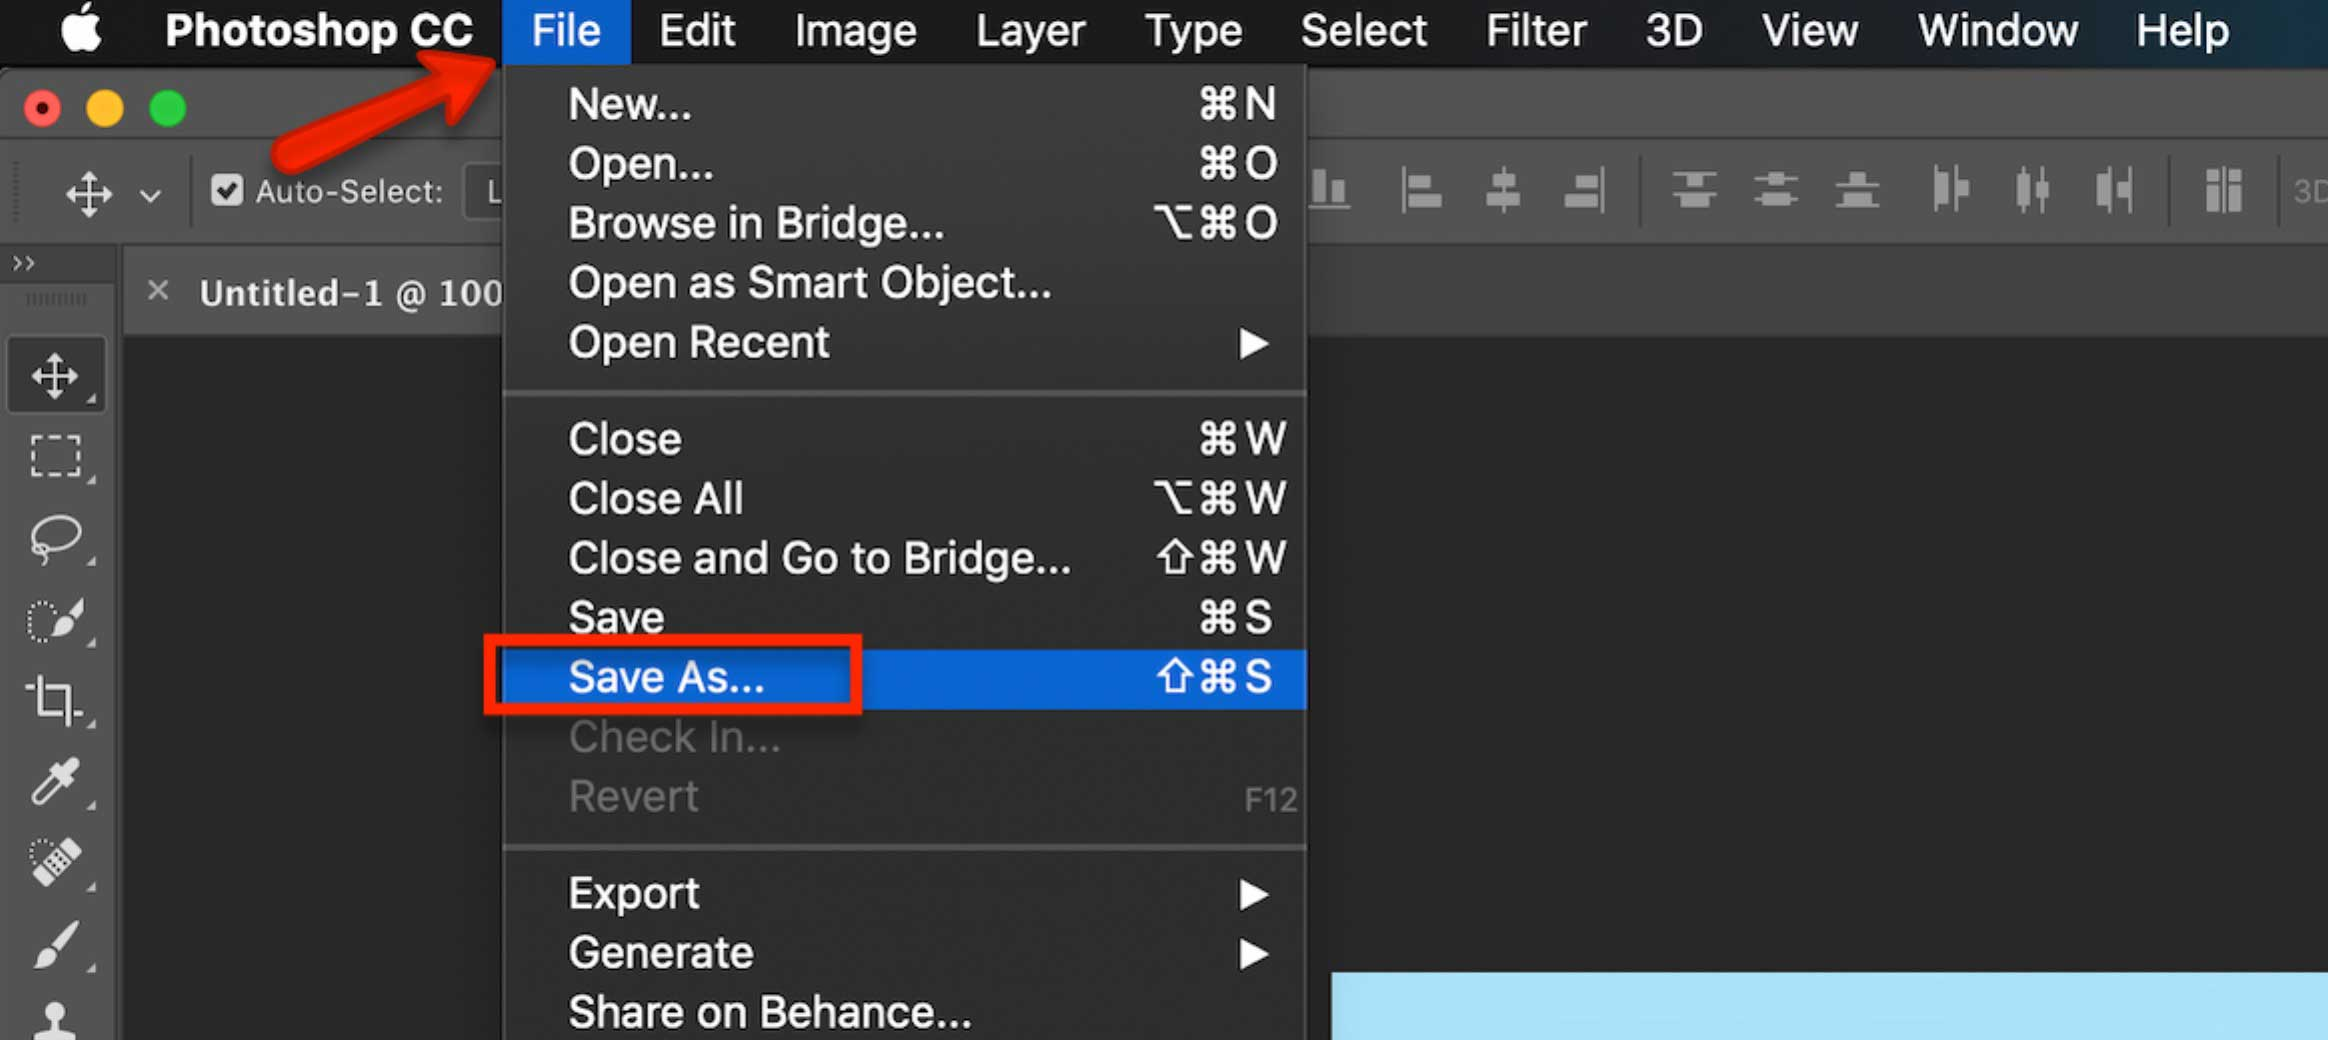 Photoshop Commands - Saving as